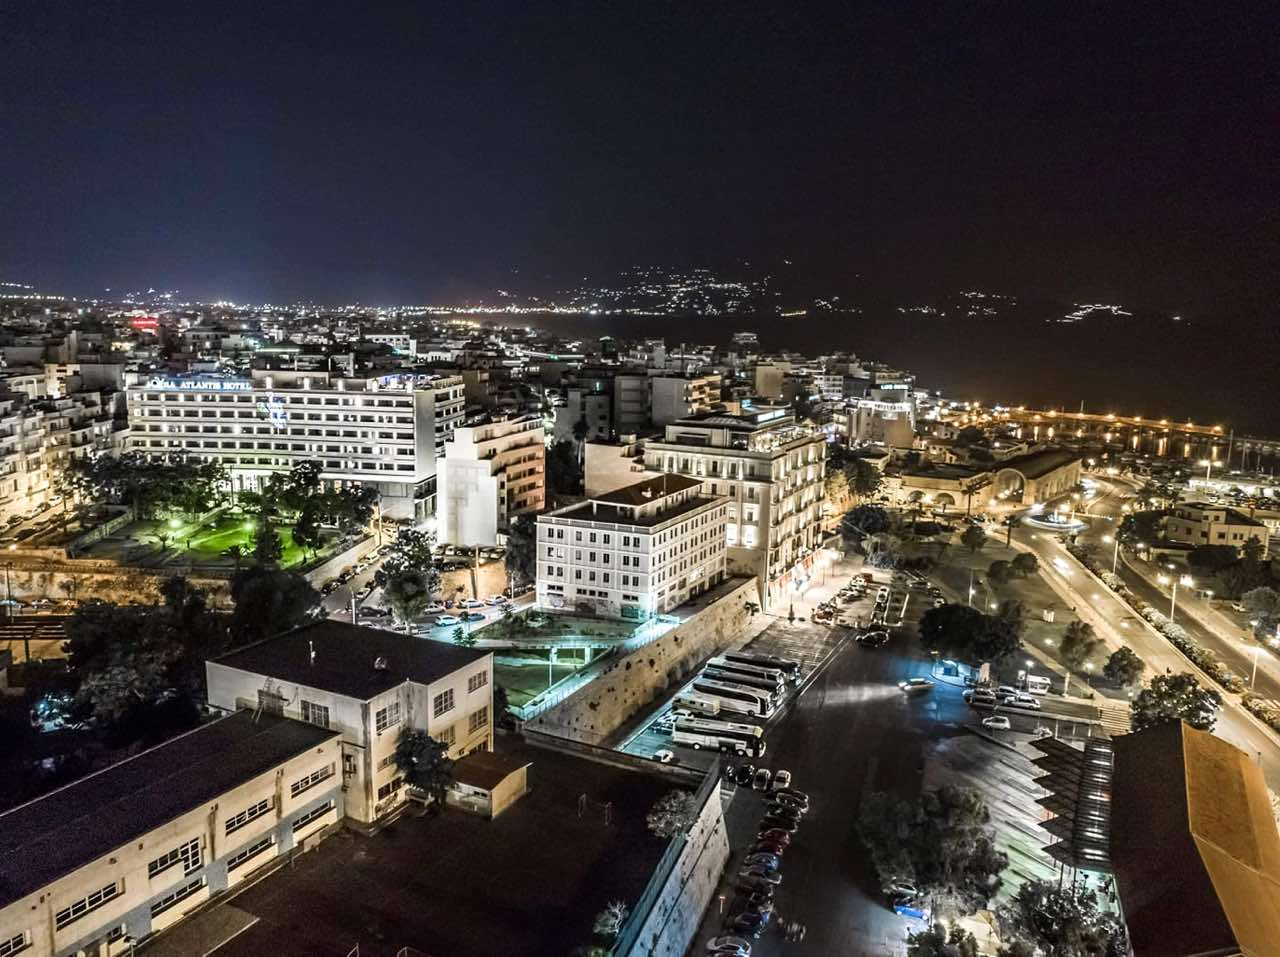 Photo of Day - Heraklion Town by Night